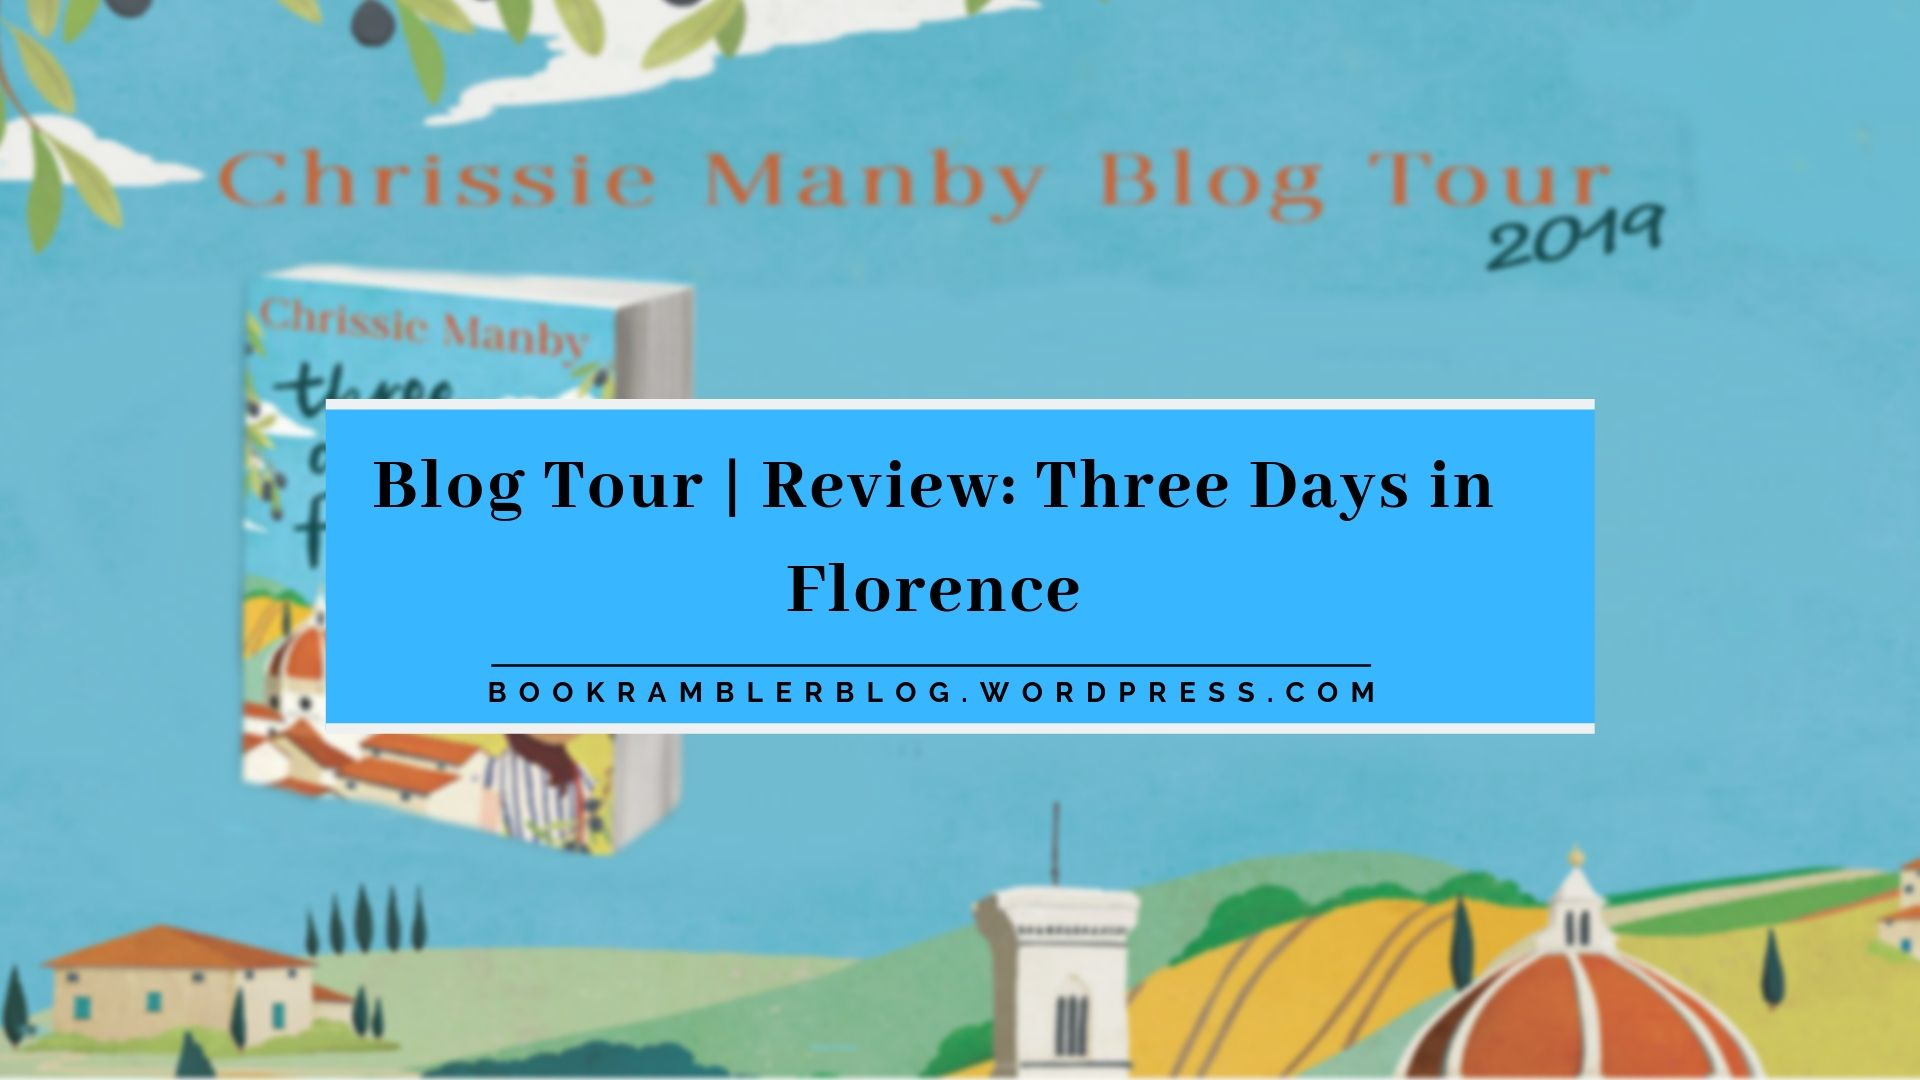 Blog Tour: Three Days in Florence, written by Chrissie Manby | Review